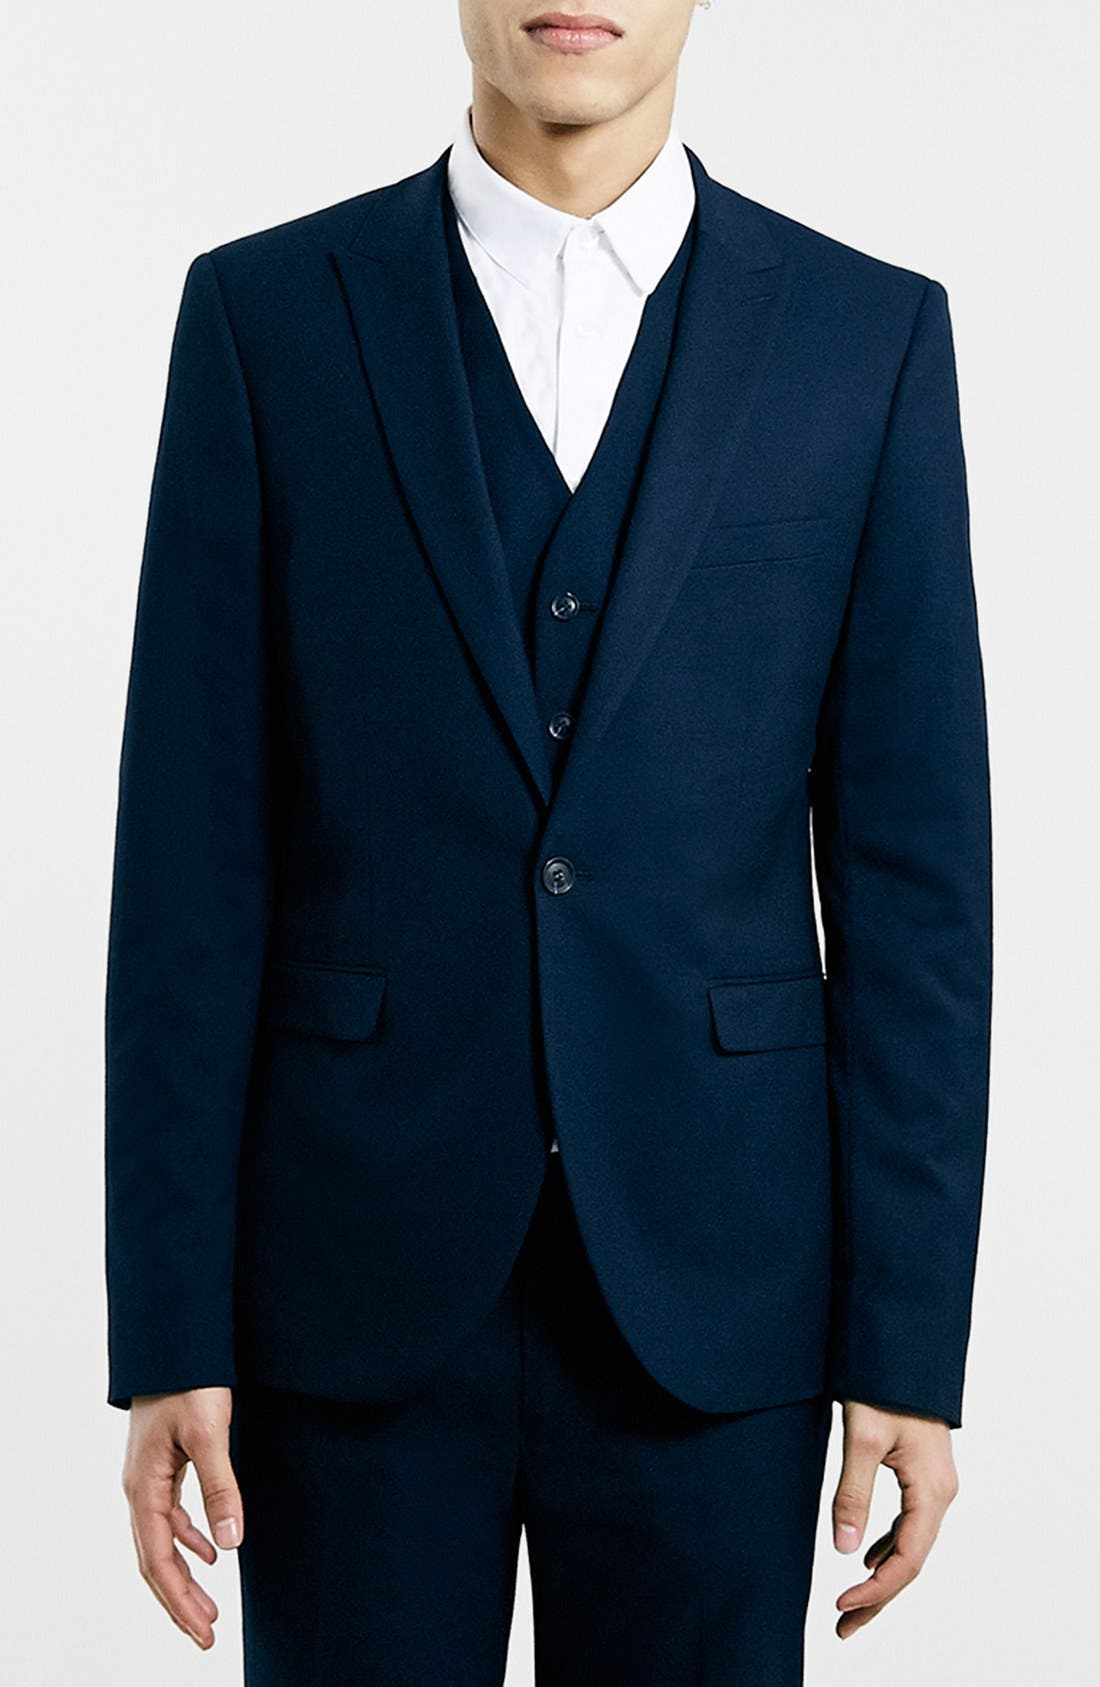 TOPMAN, Navy Textured Skinny Fit Suit Jacket, Main thumbnail 1, color, 410